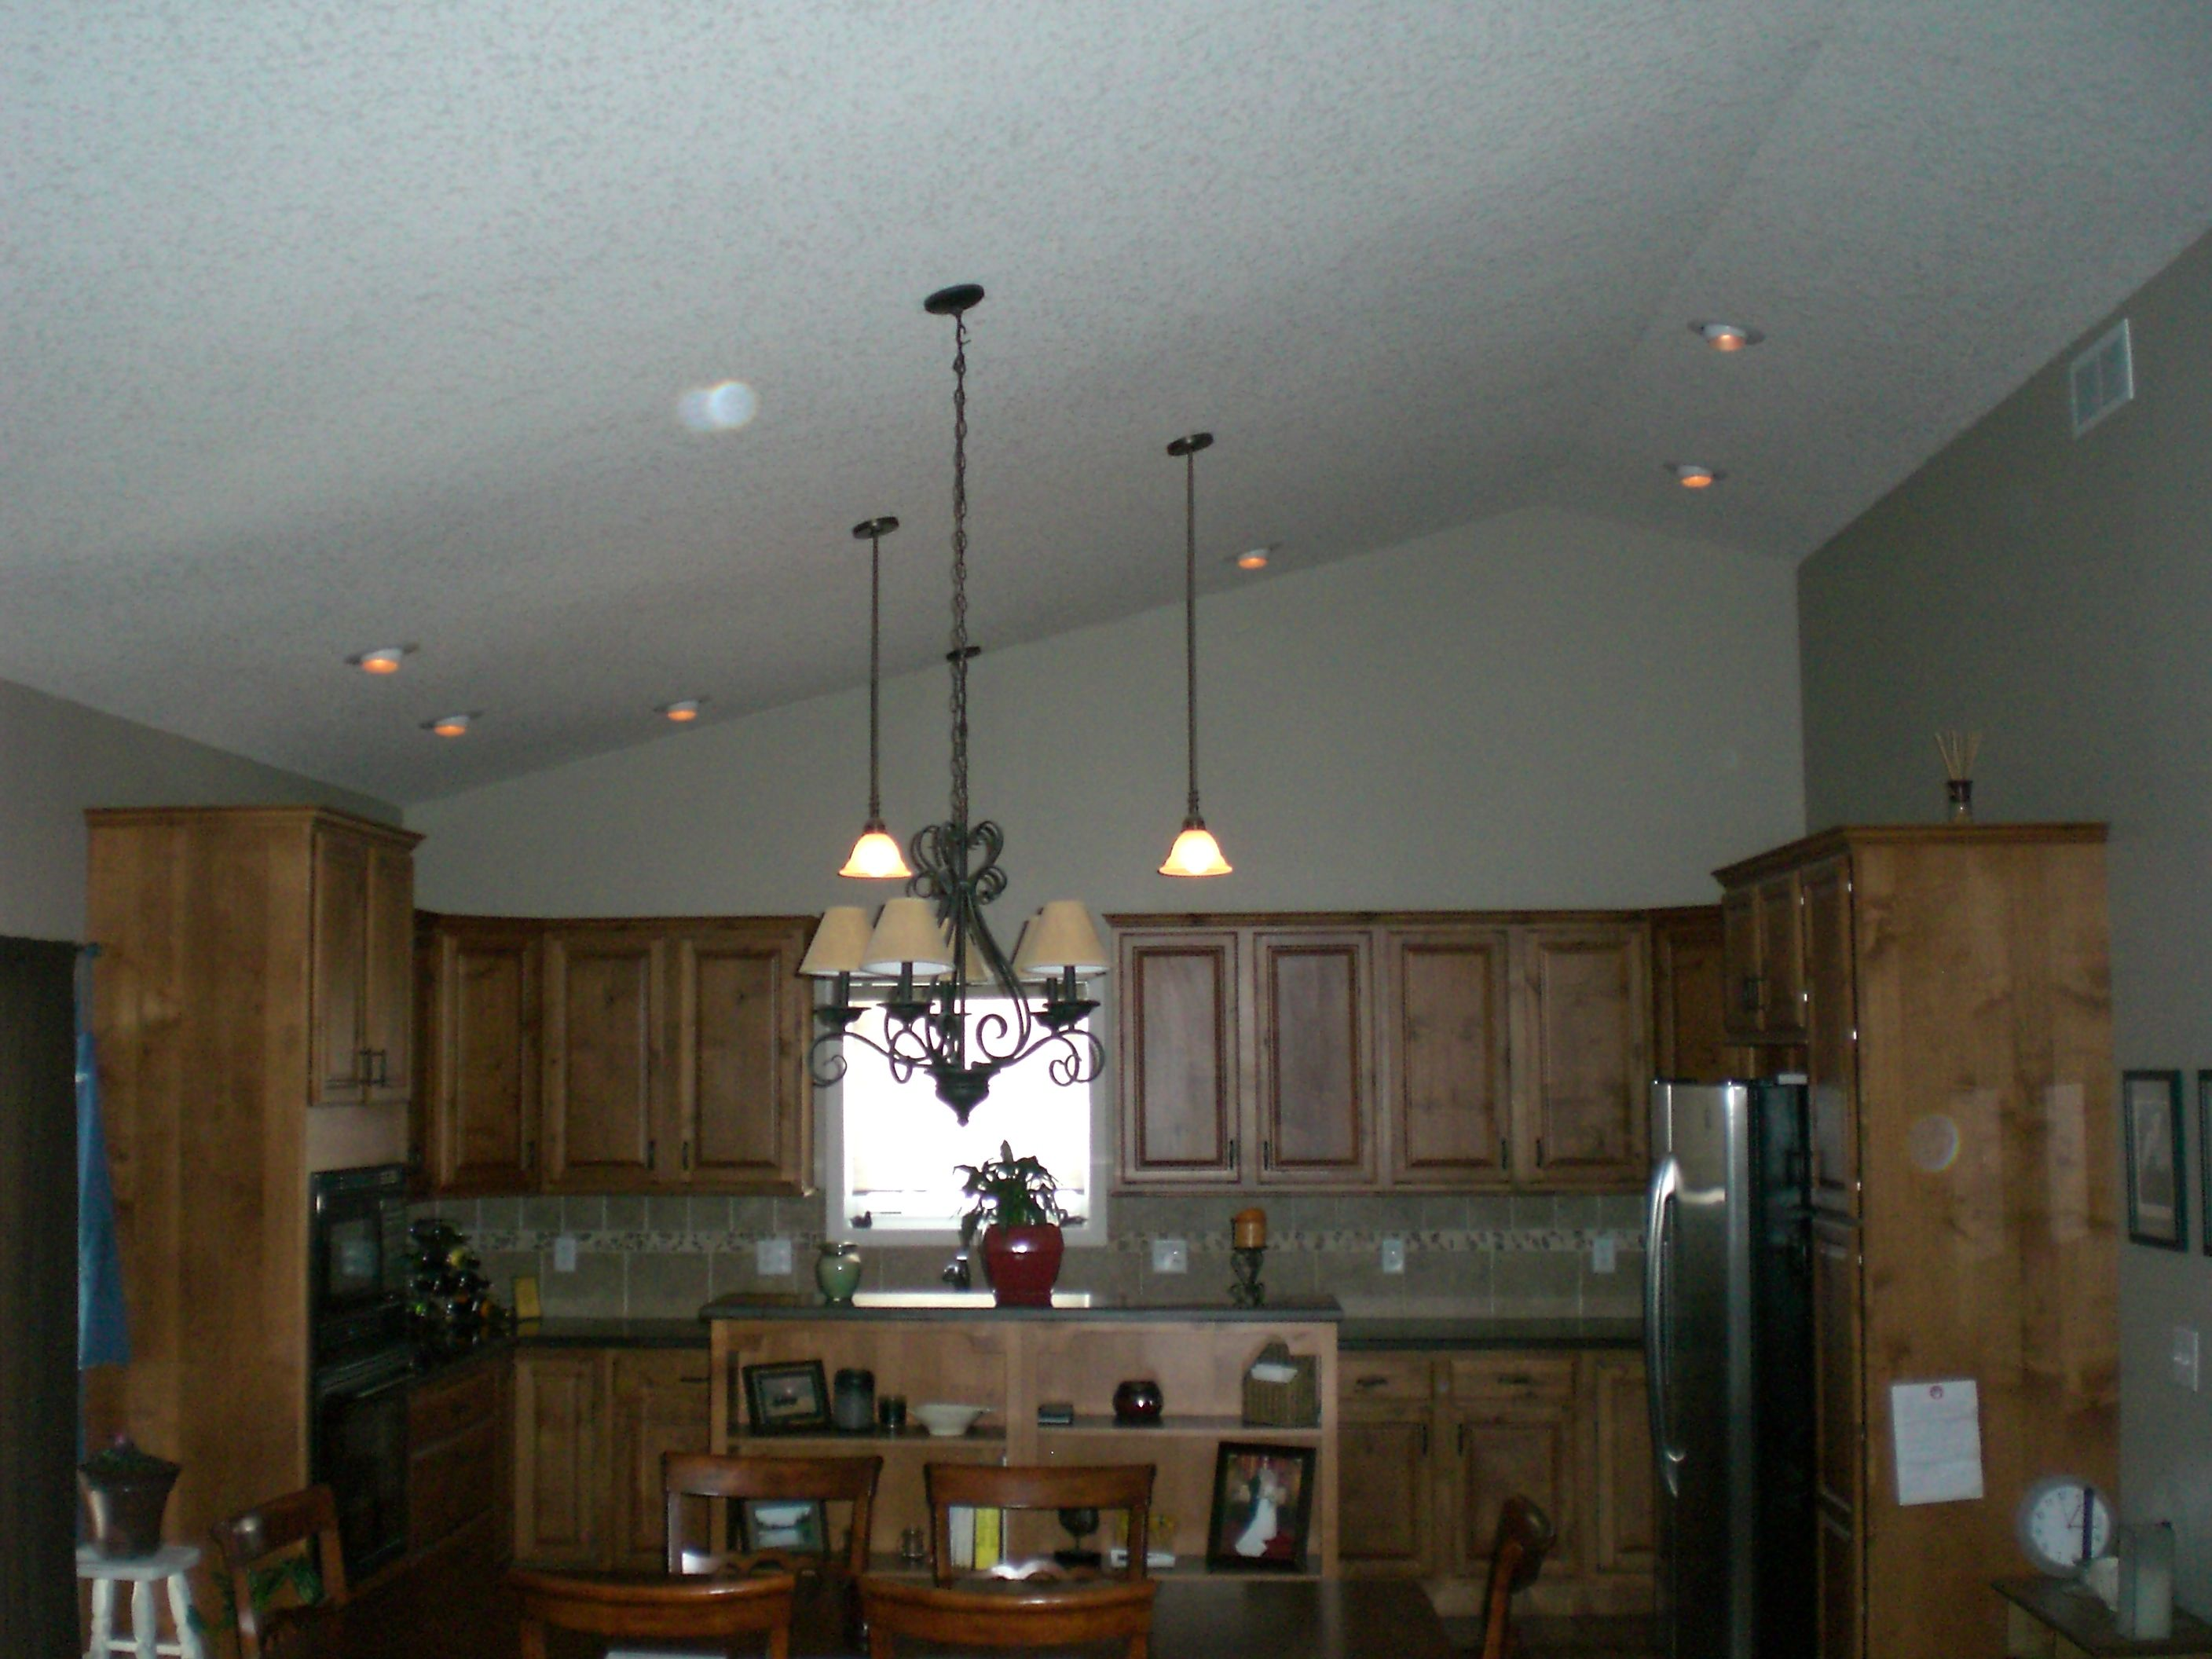 Looking for lighting for the kitchen. I like the idea of pot lights ...